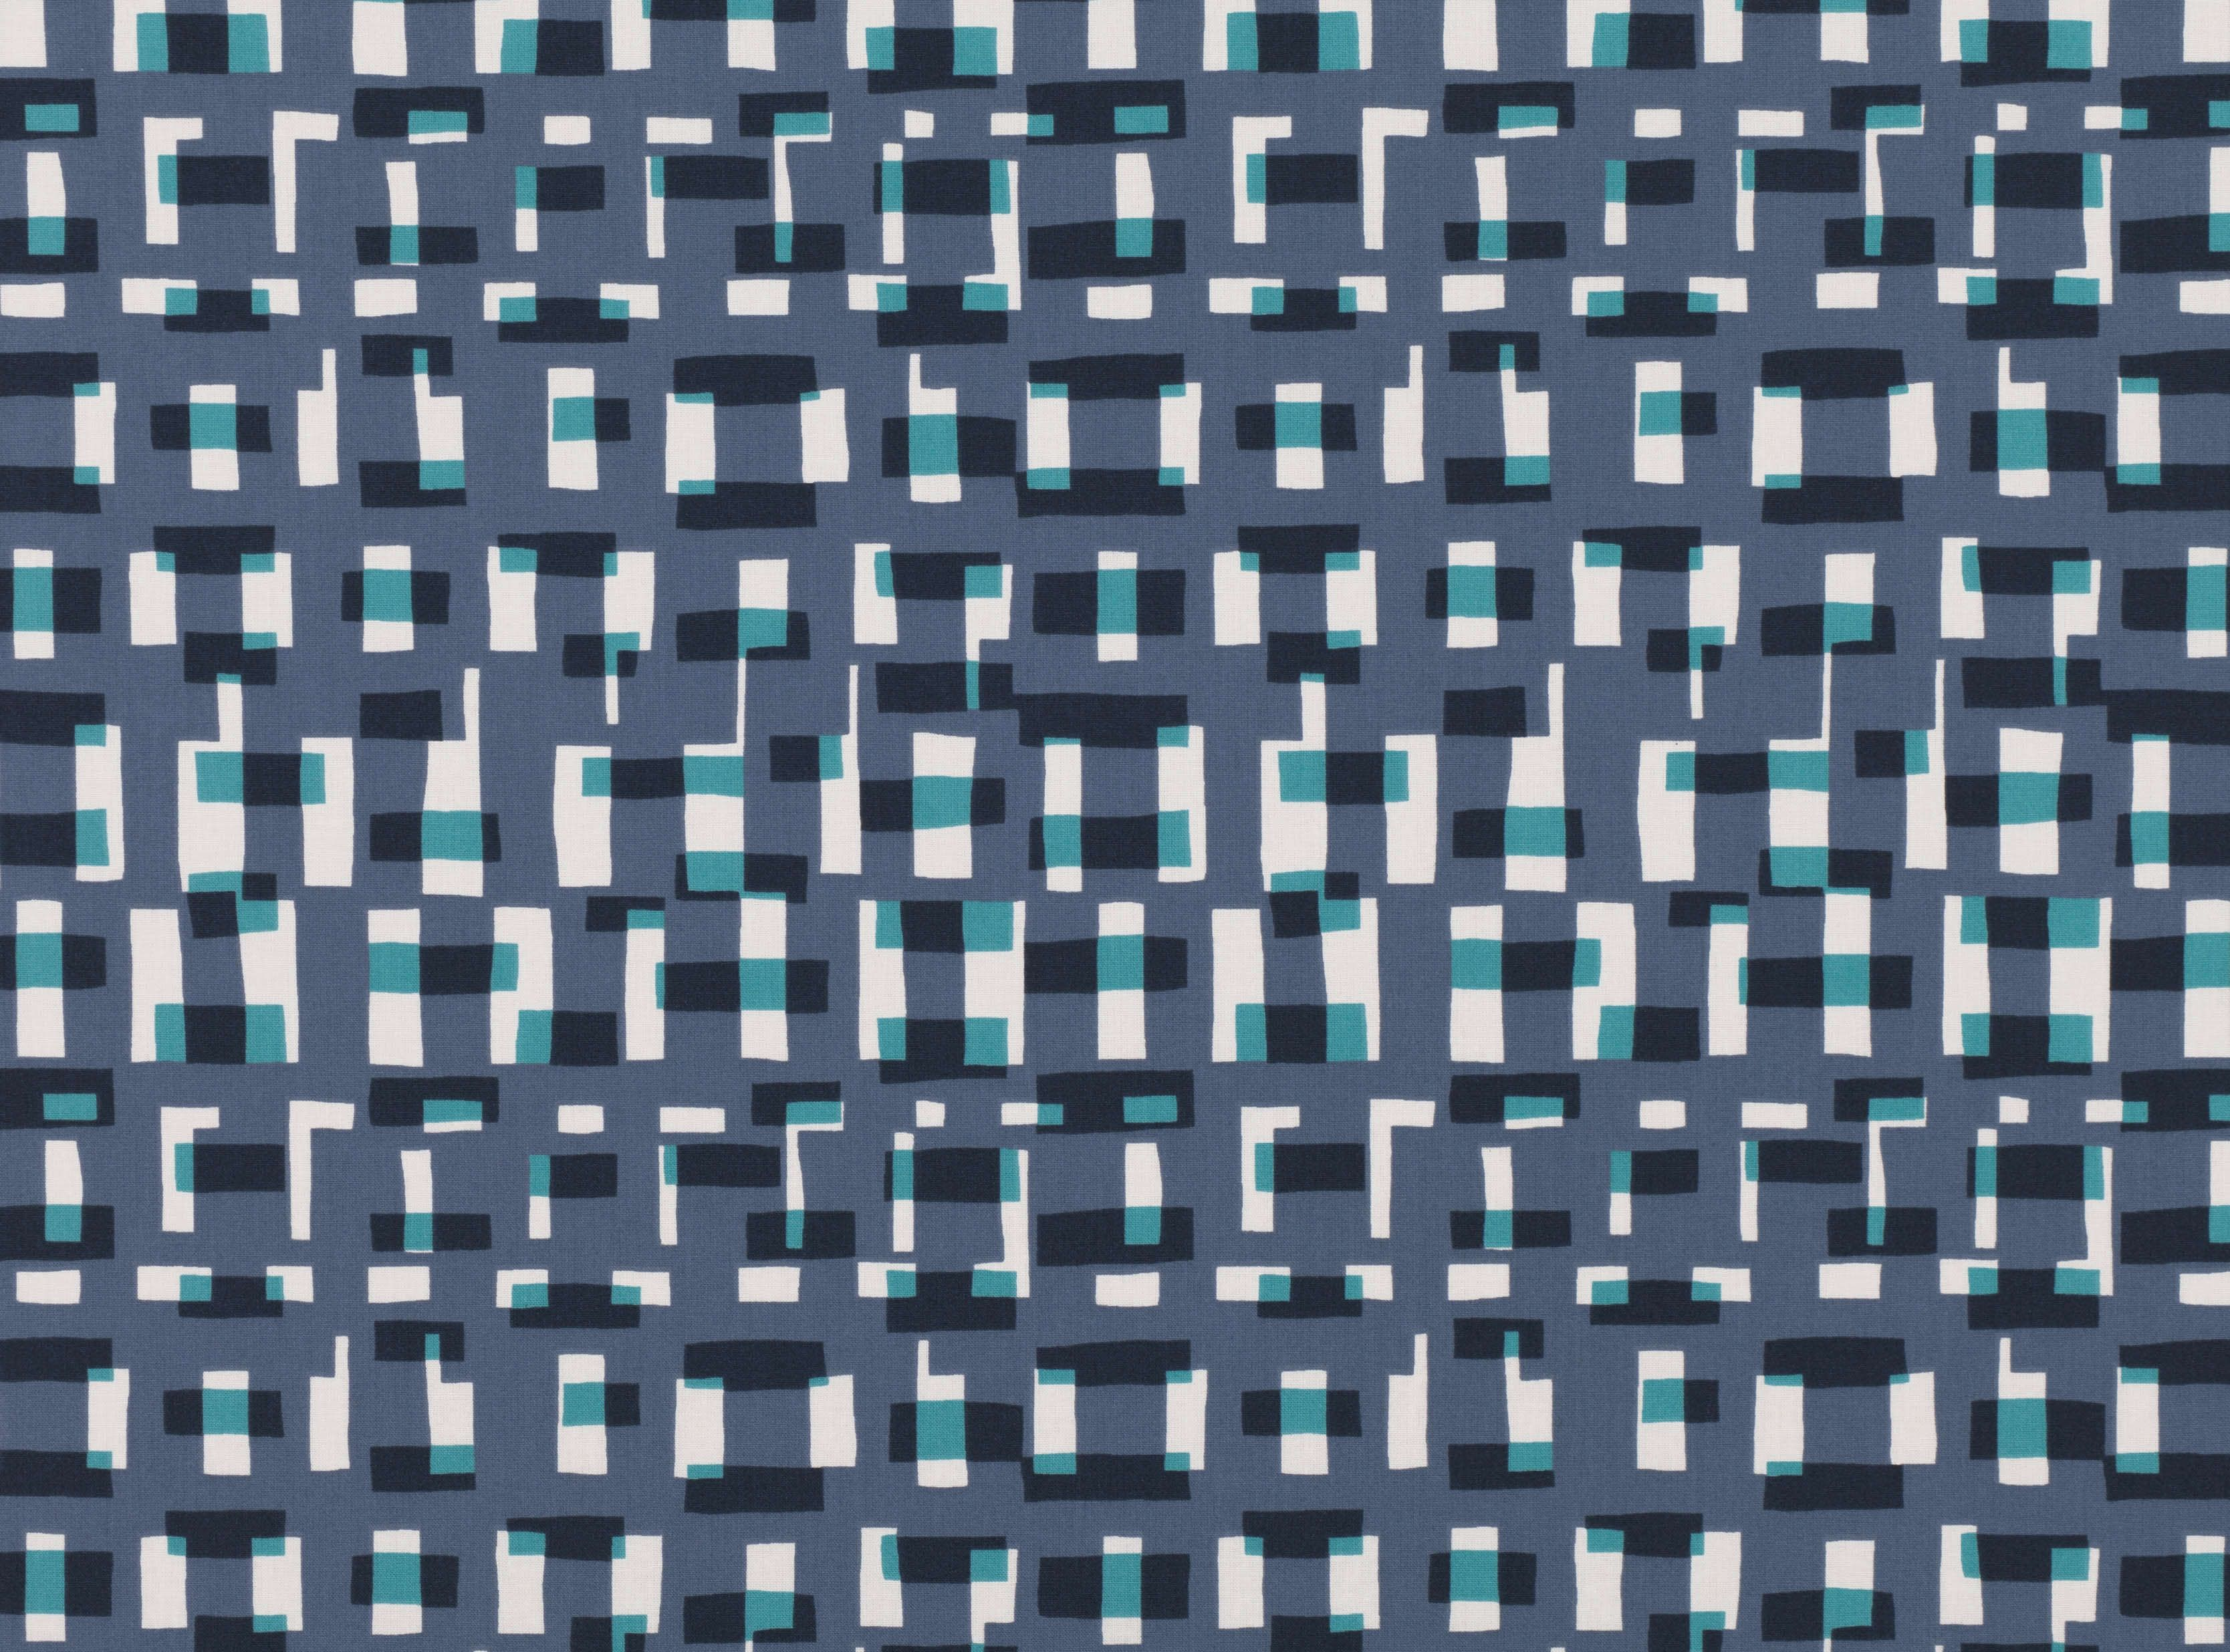 A contemporary print featuring simple, overlapping shapes